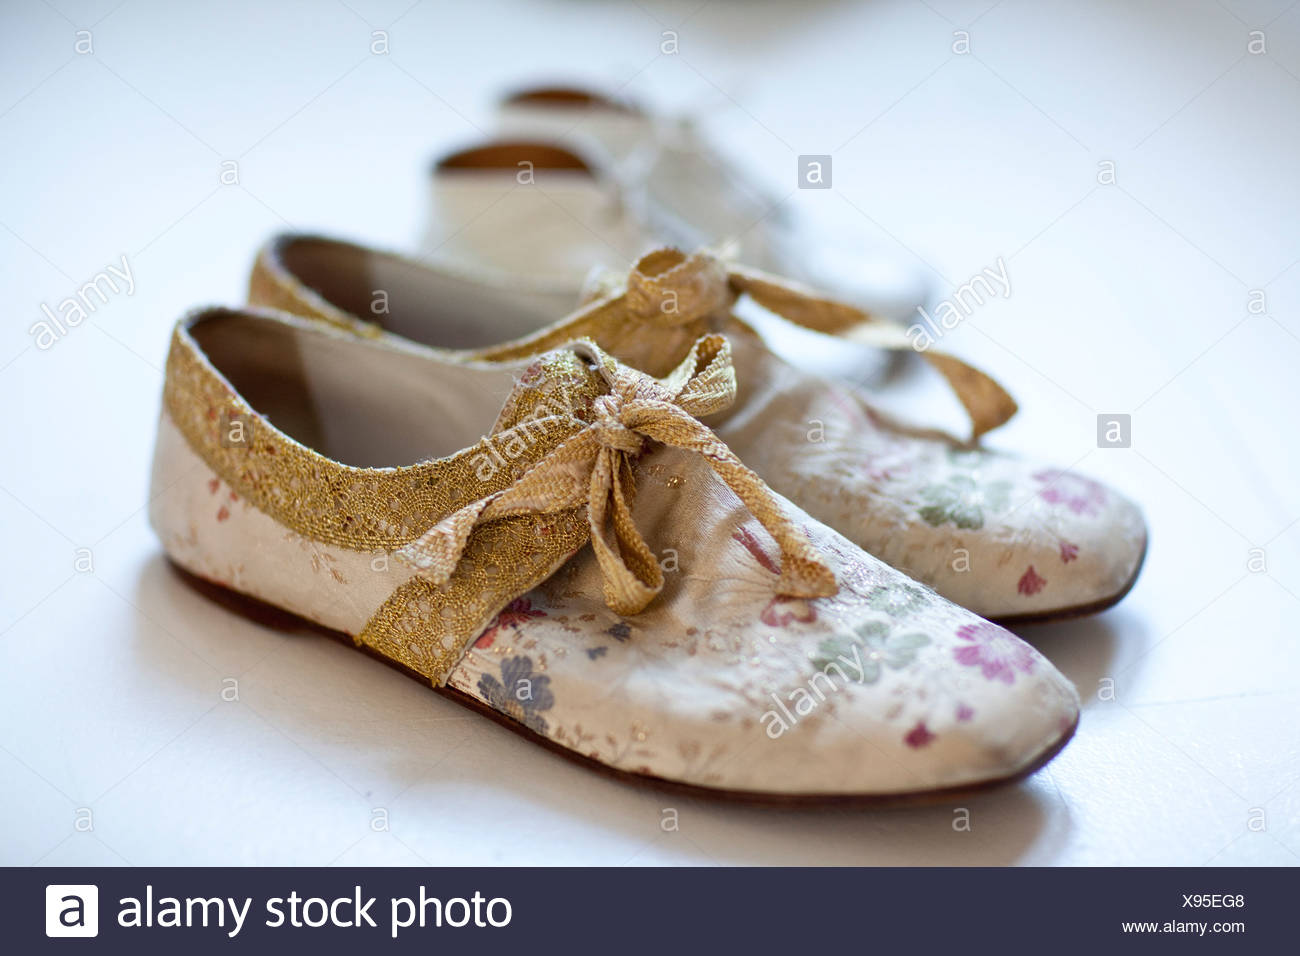 Close up of flower patterned shoes - Stock Image